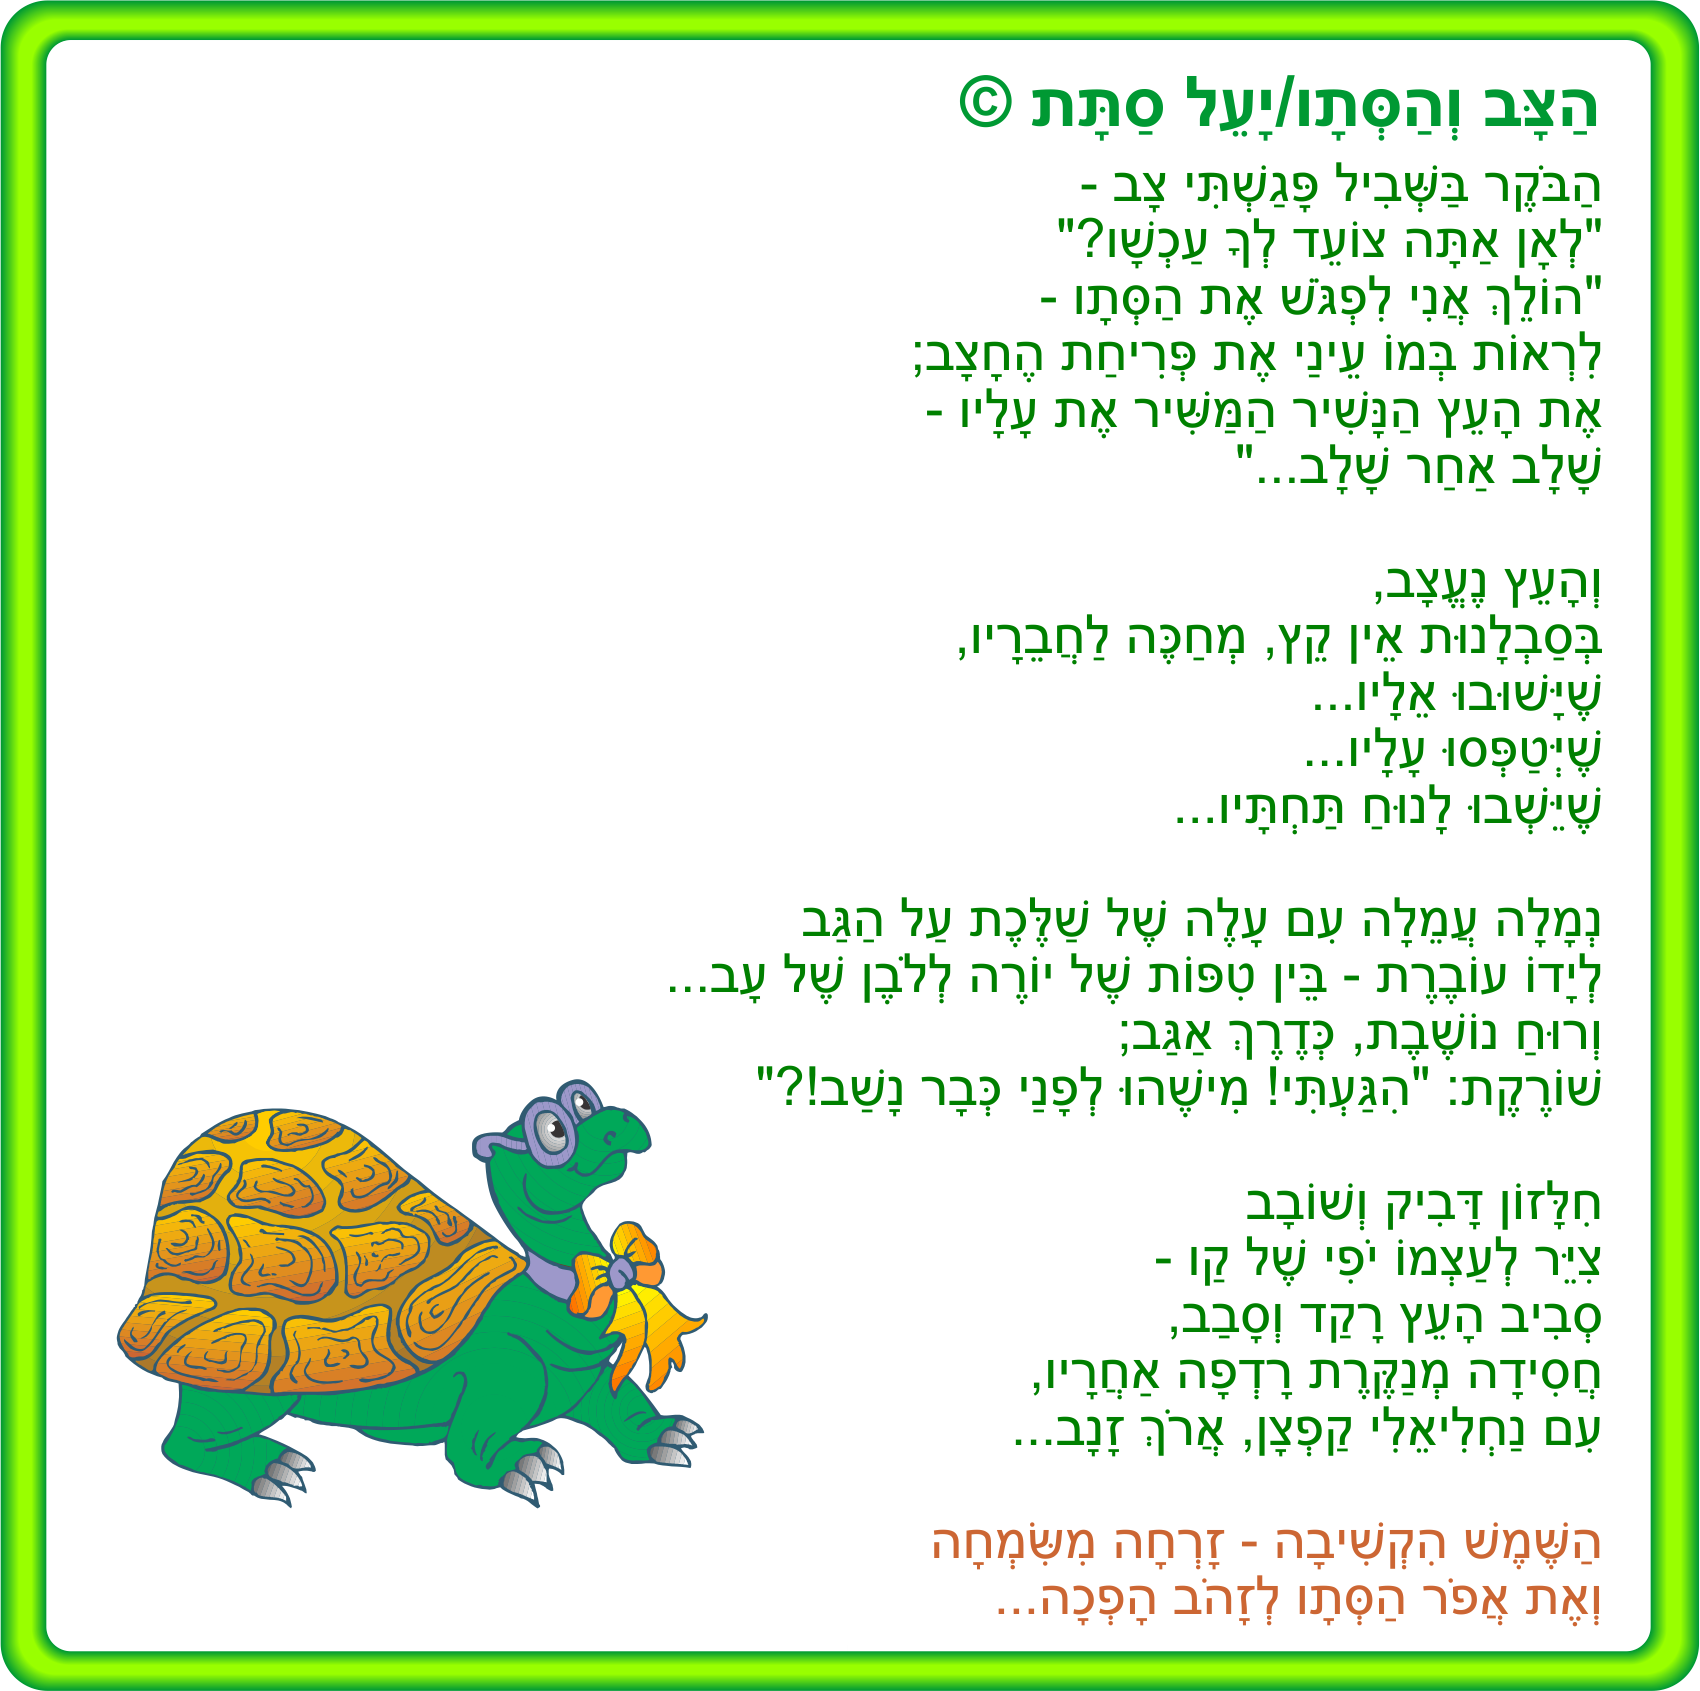 Artwork from the book - סתיו עכשיו by Yael Satat - Illustrated by חיים סתת - Ourboox.com